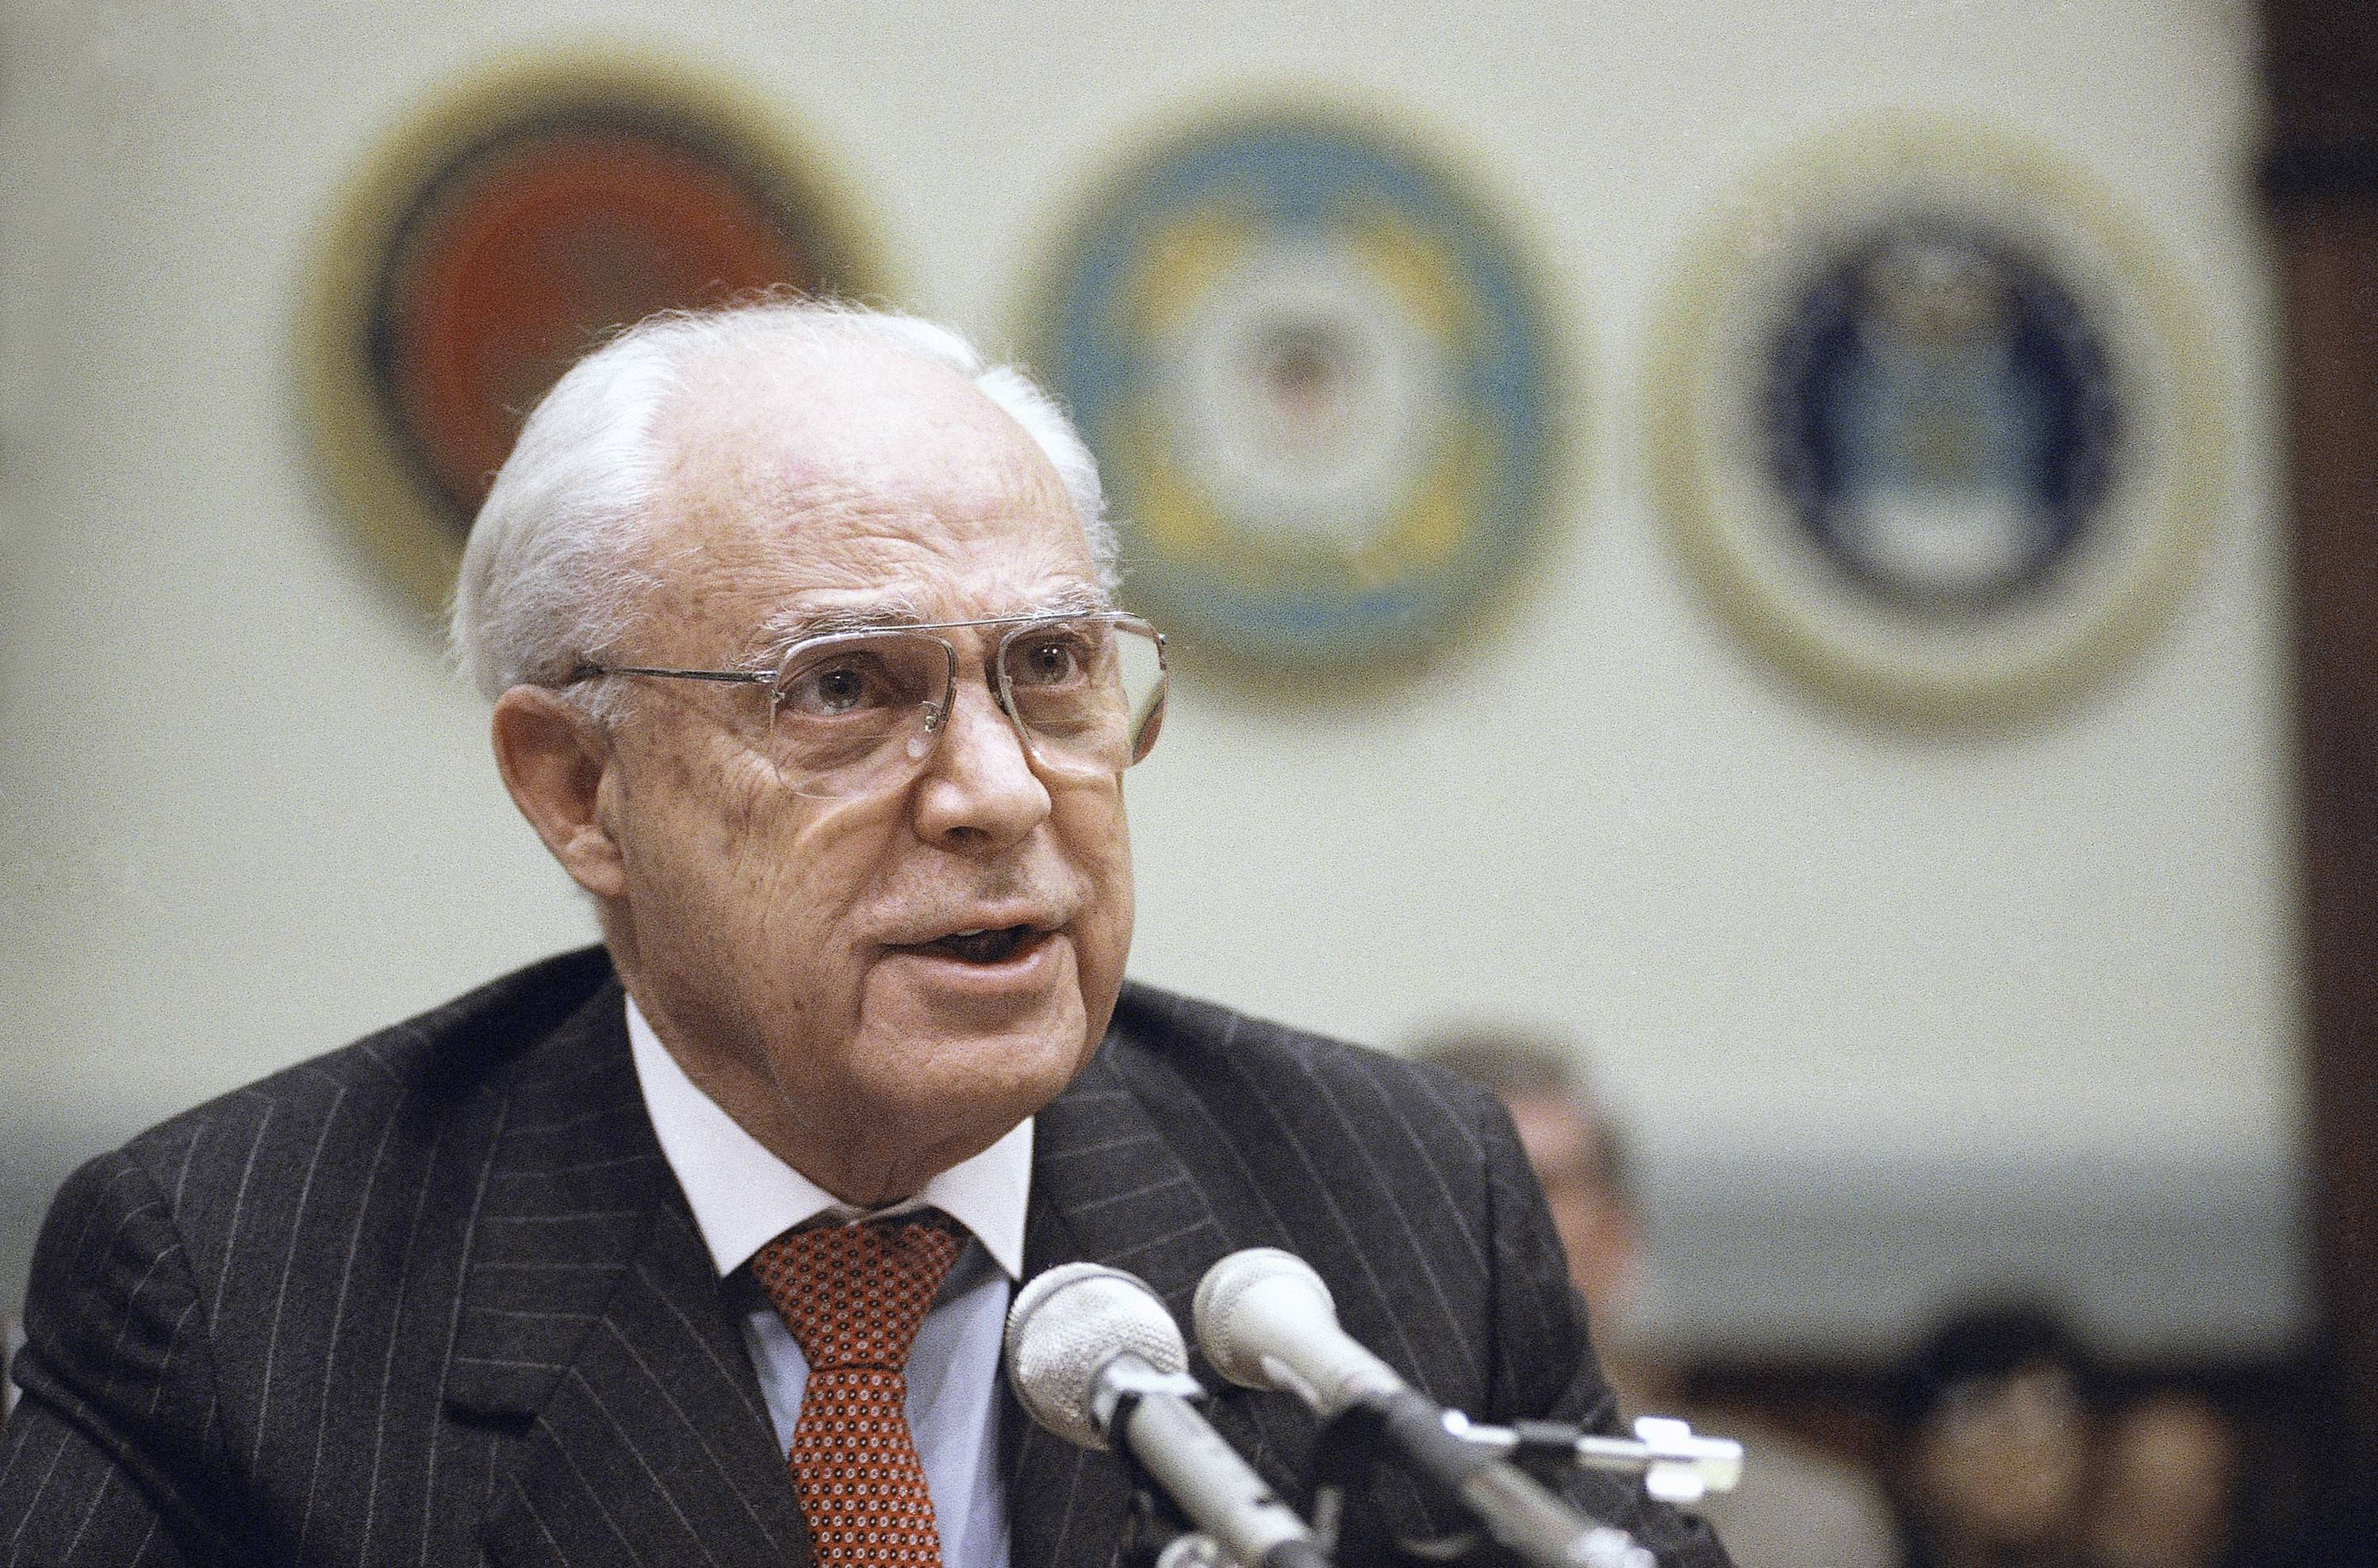 Robert Strauss, a former chairman of the Democratic Party and an ambassador to the Soviet Union, has died. Strauss' law firm confirmed his death Wednesday, March 19, 2014, at age 95.